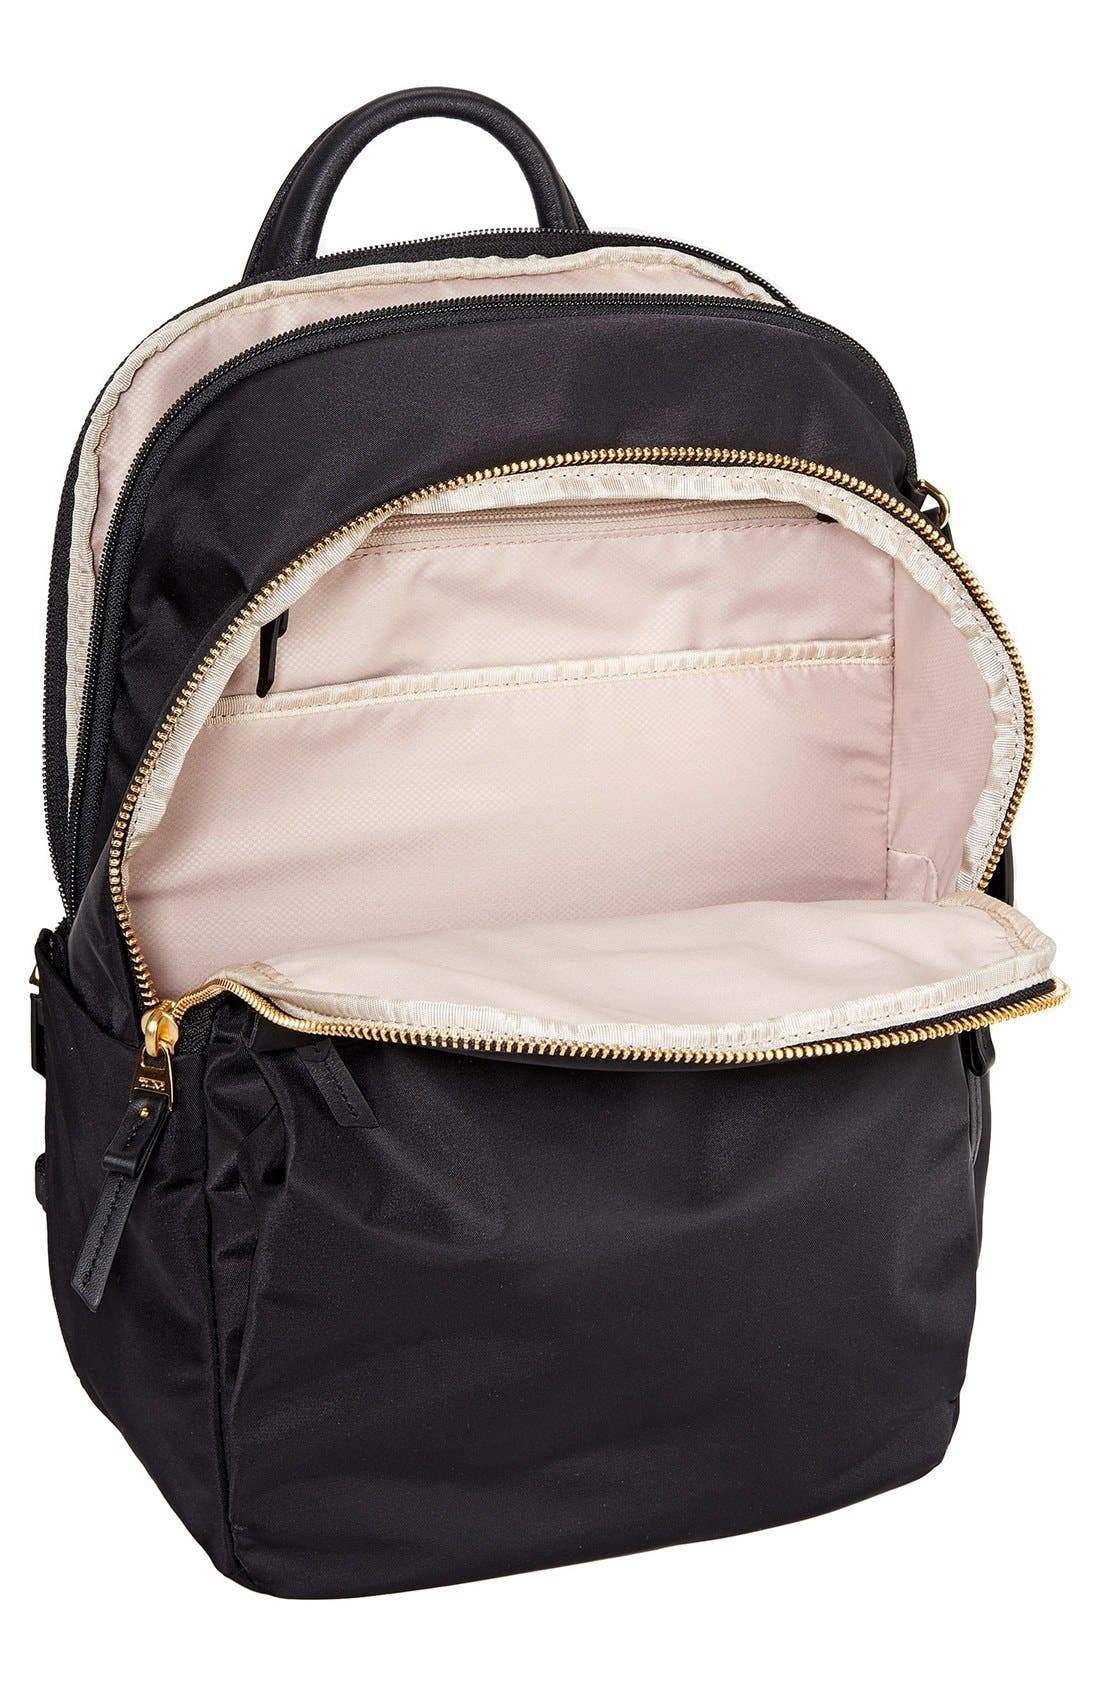 TUMI,                             Voyageur - Small Daniella Backpack,                             Alternate thumbnail 2, color,                             001